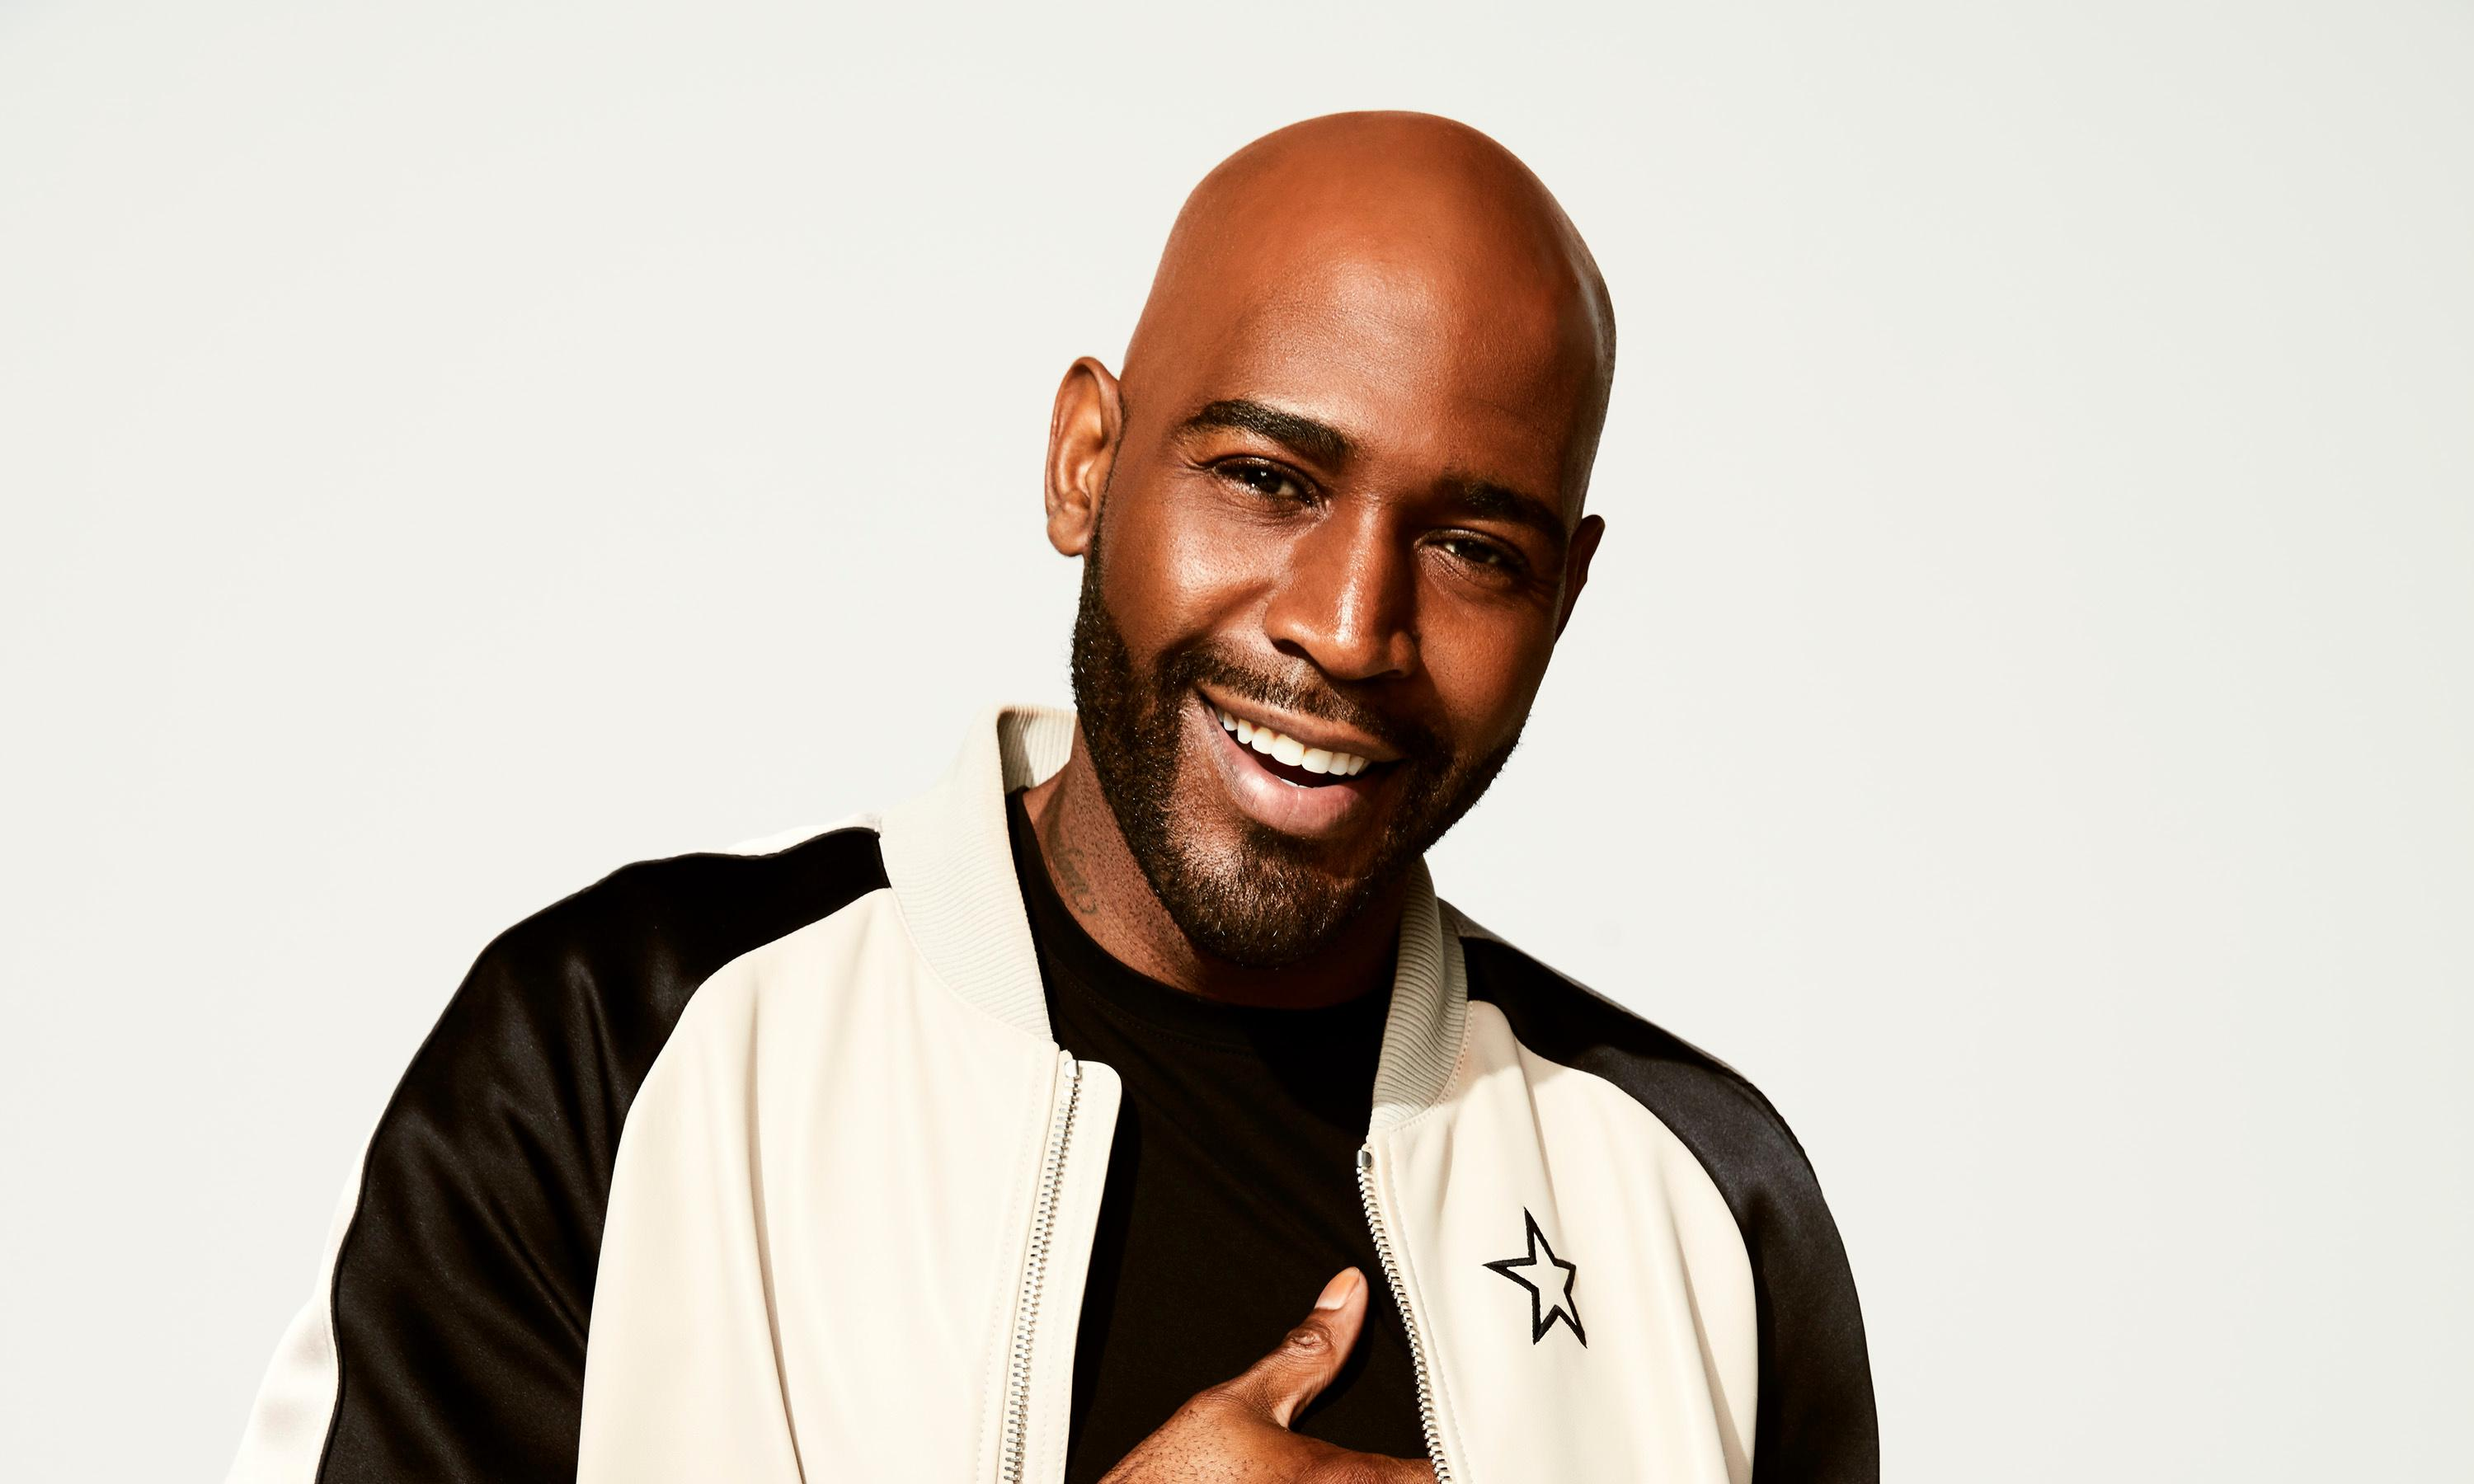 Queer Eye's Karamo Brown under fire after praising Sean Spicer as 'sweet guy'